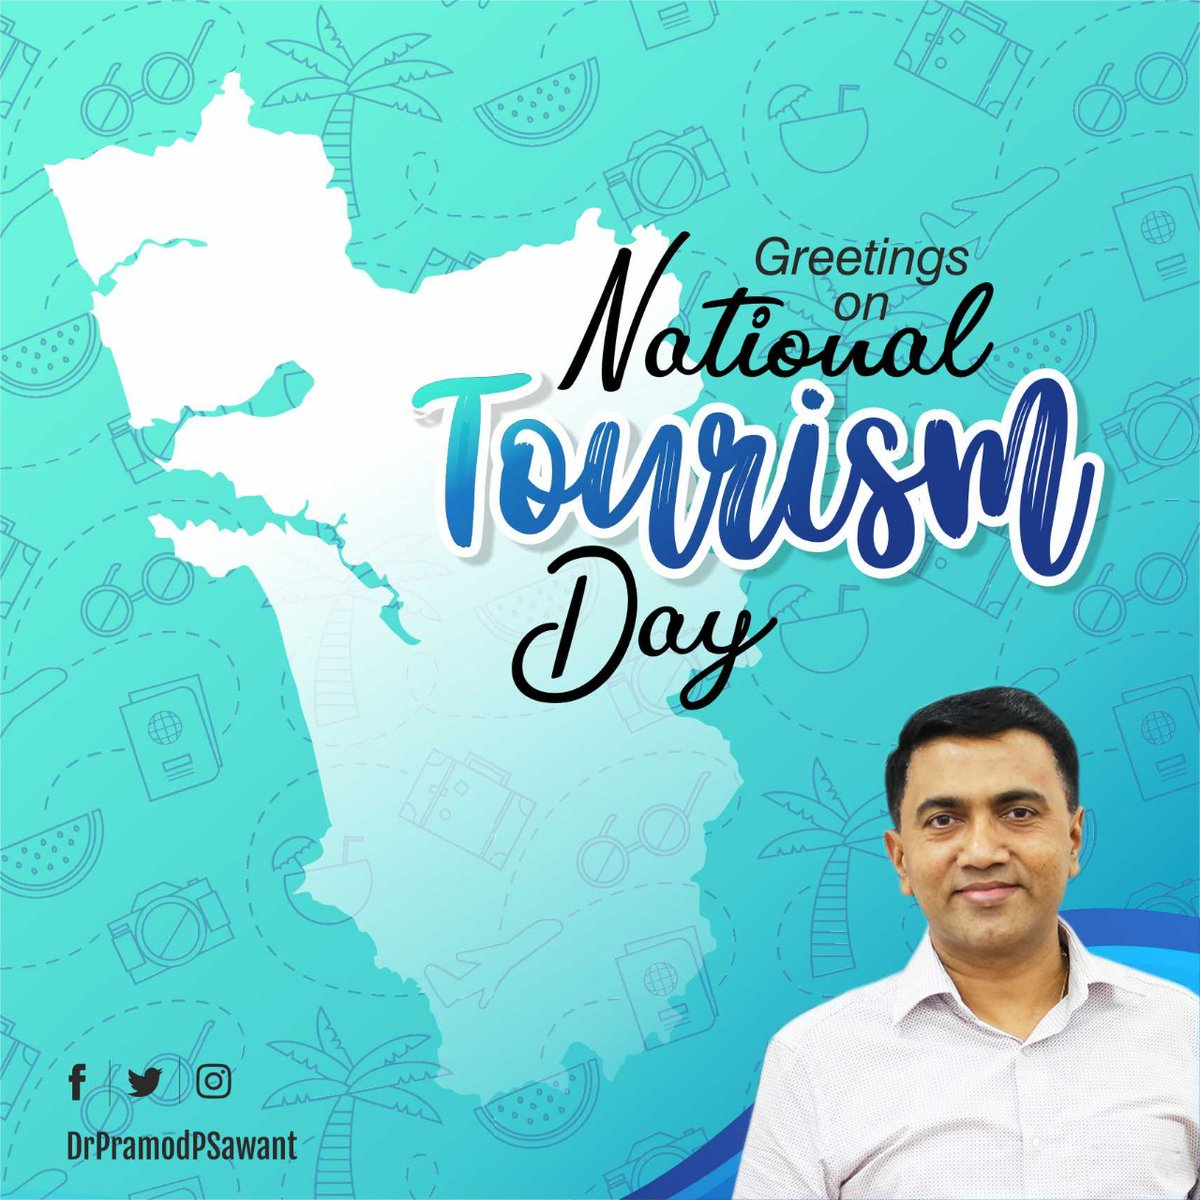 Tourism brings great growth and opportunities in the state.   On this #NationalTourismDay, we welcome everyone to experience the beauty of Goa.